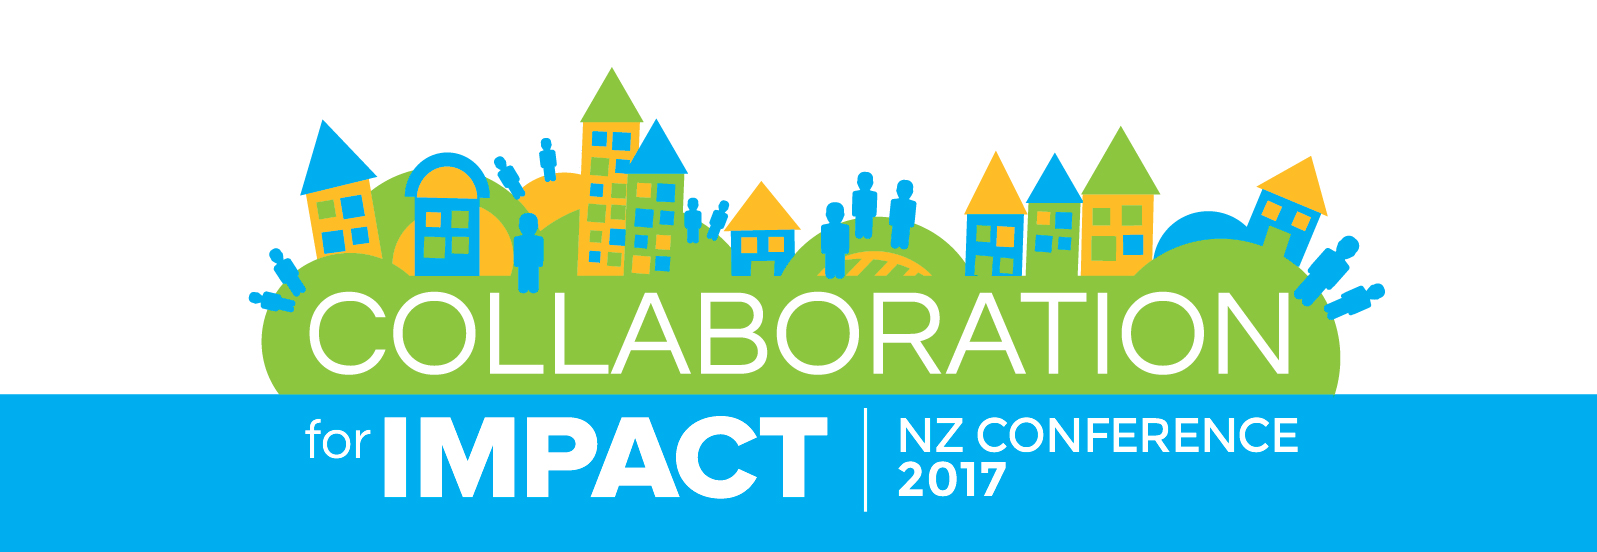 Collaboration for Impact NZ Conference 2017